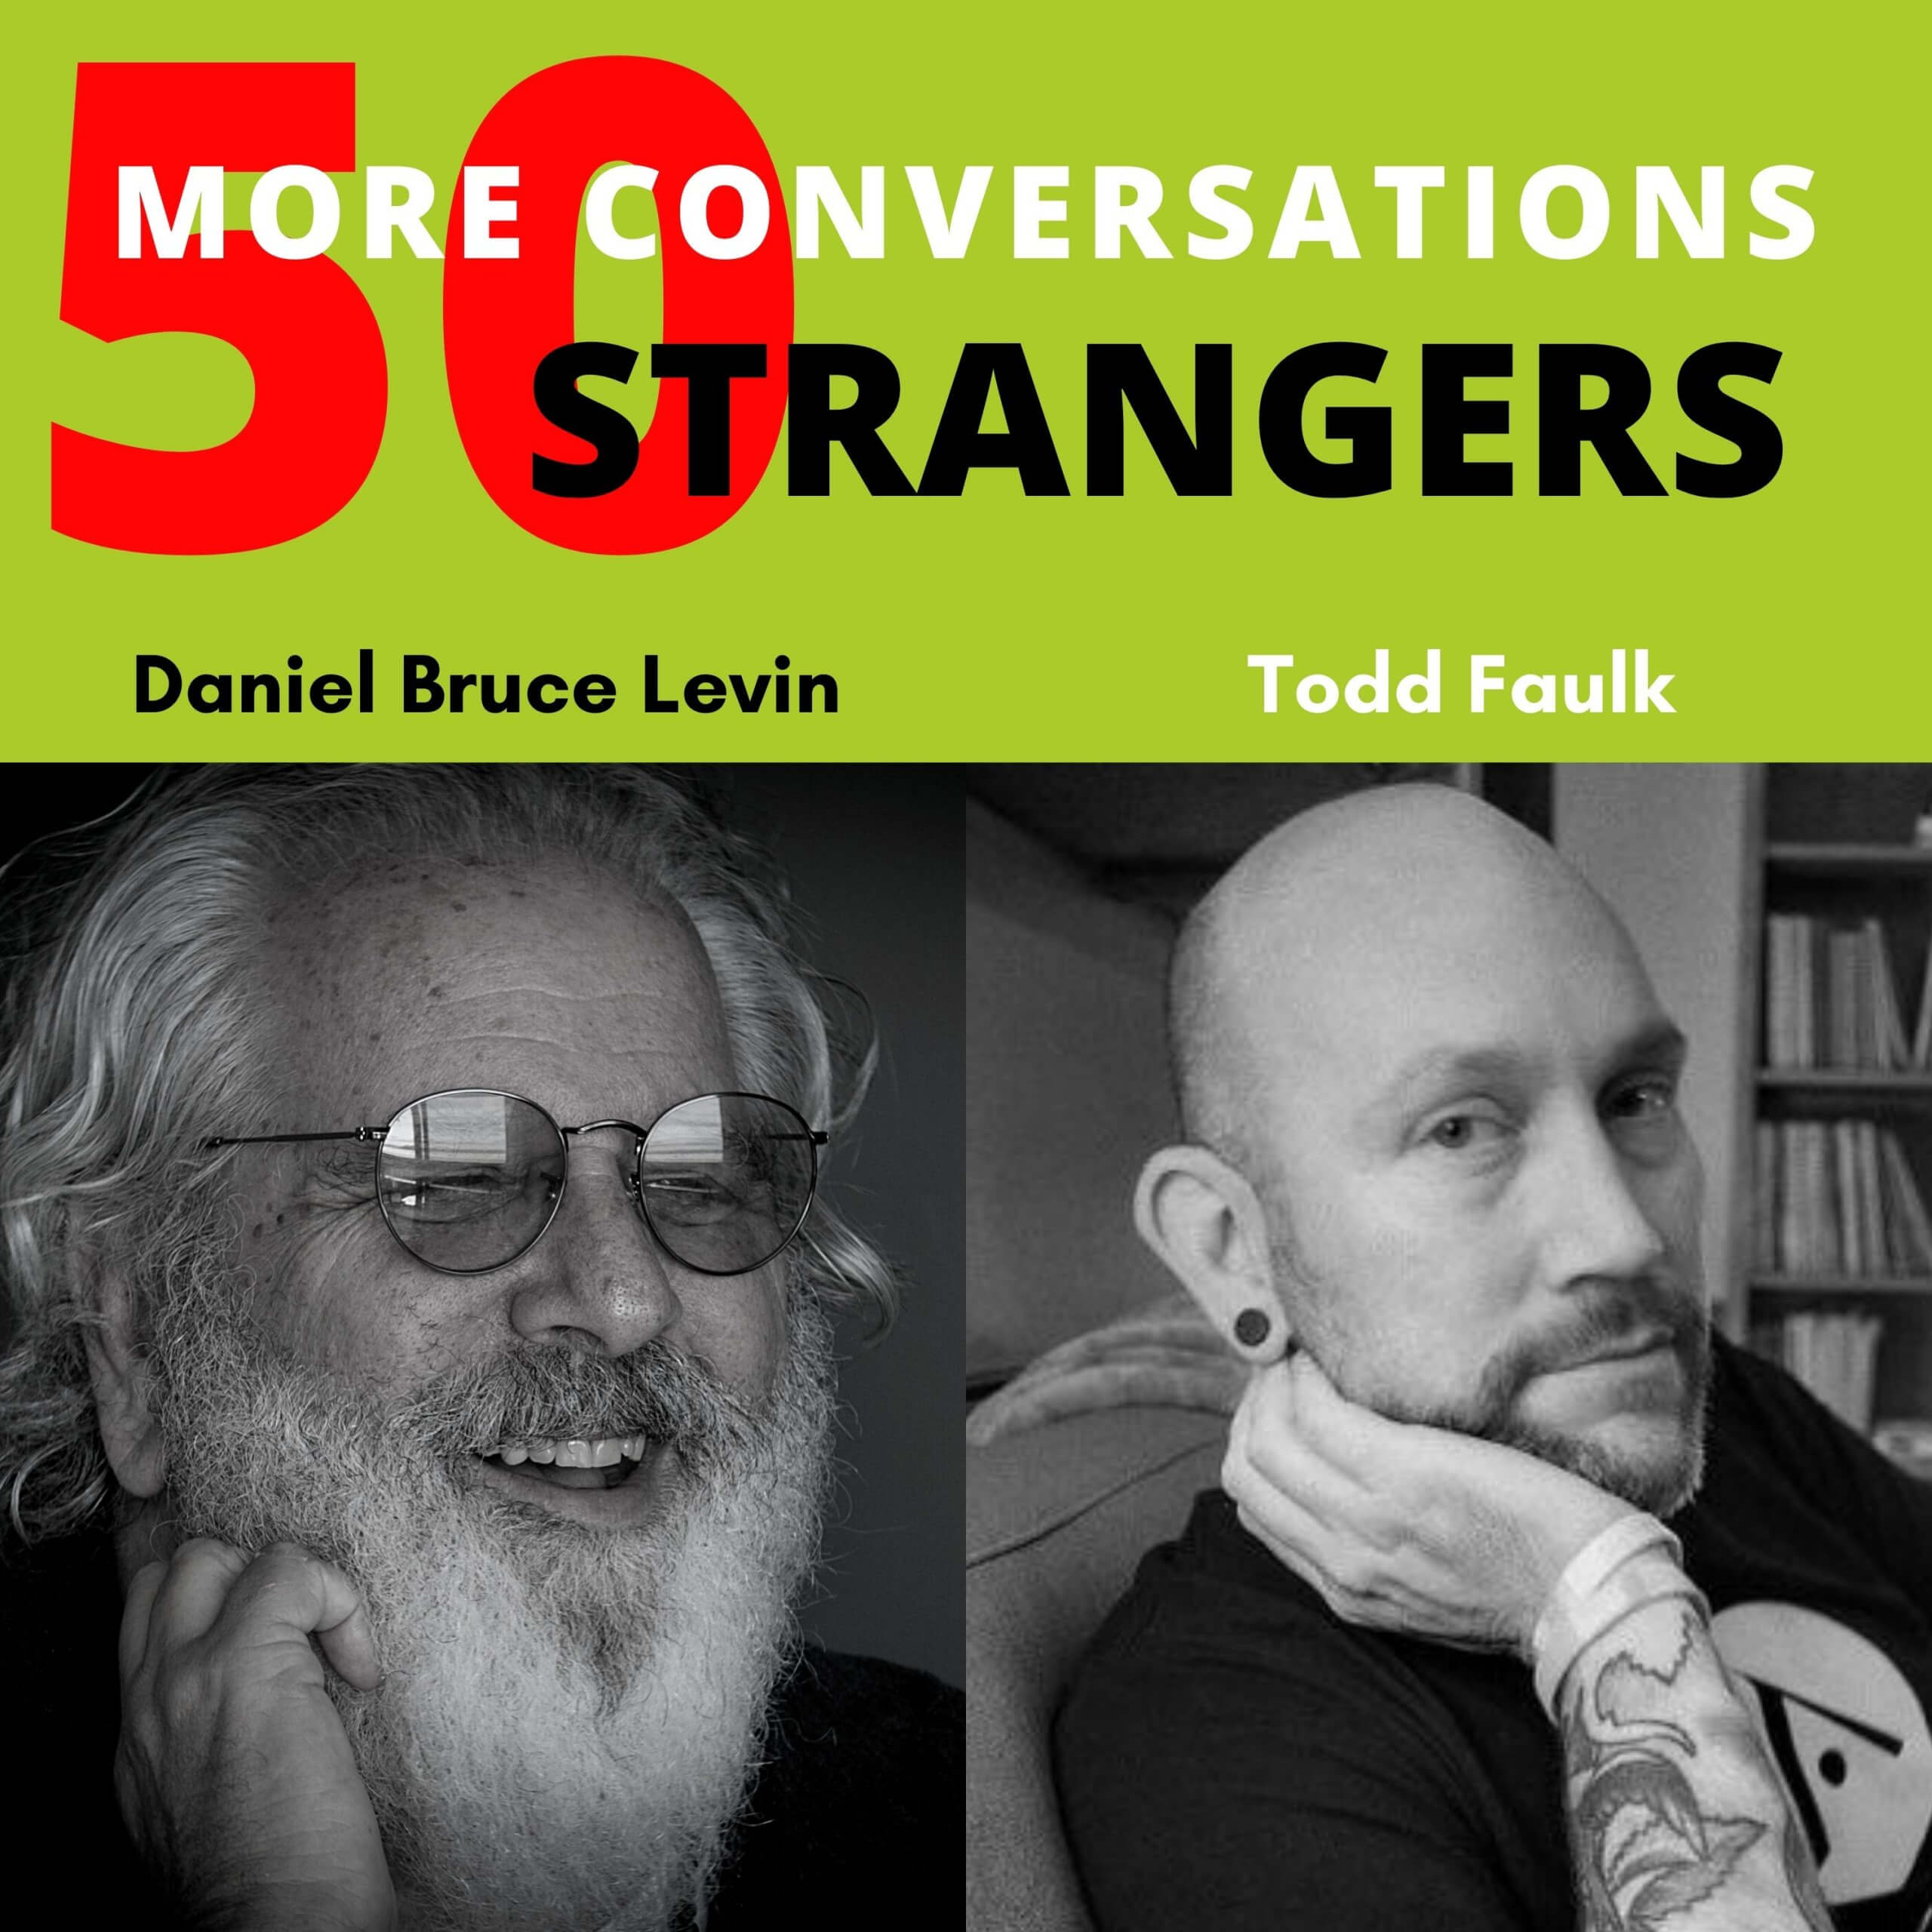 50 More Conversations with 50 More Strangers with Todd Faulk